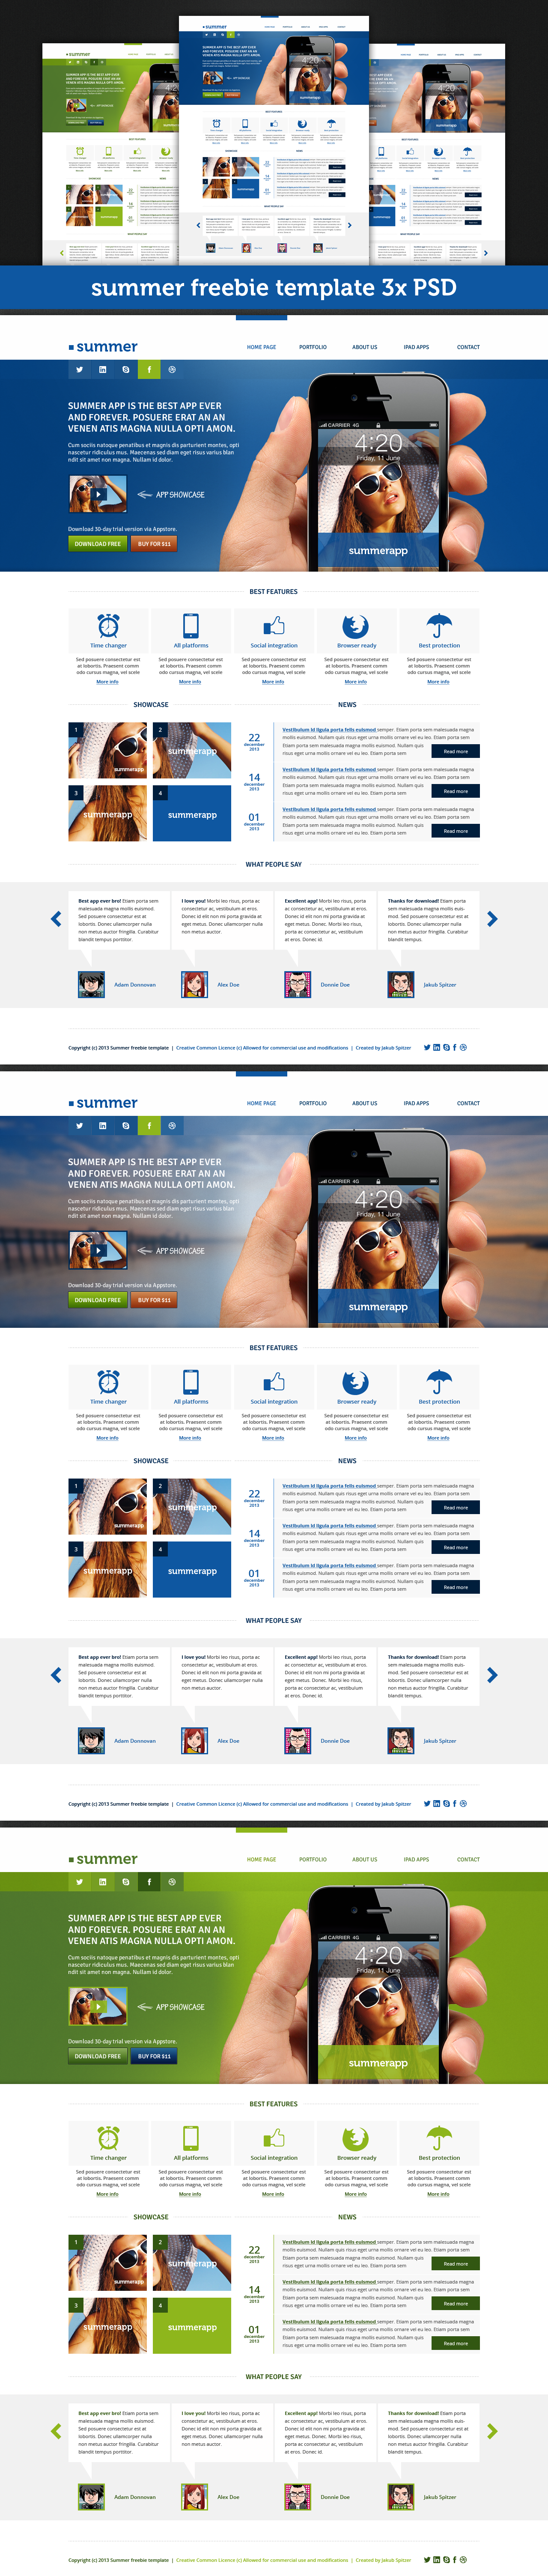 Summer Template Free PSD File